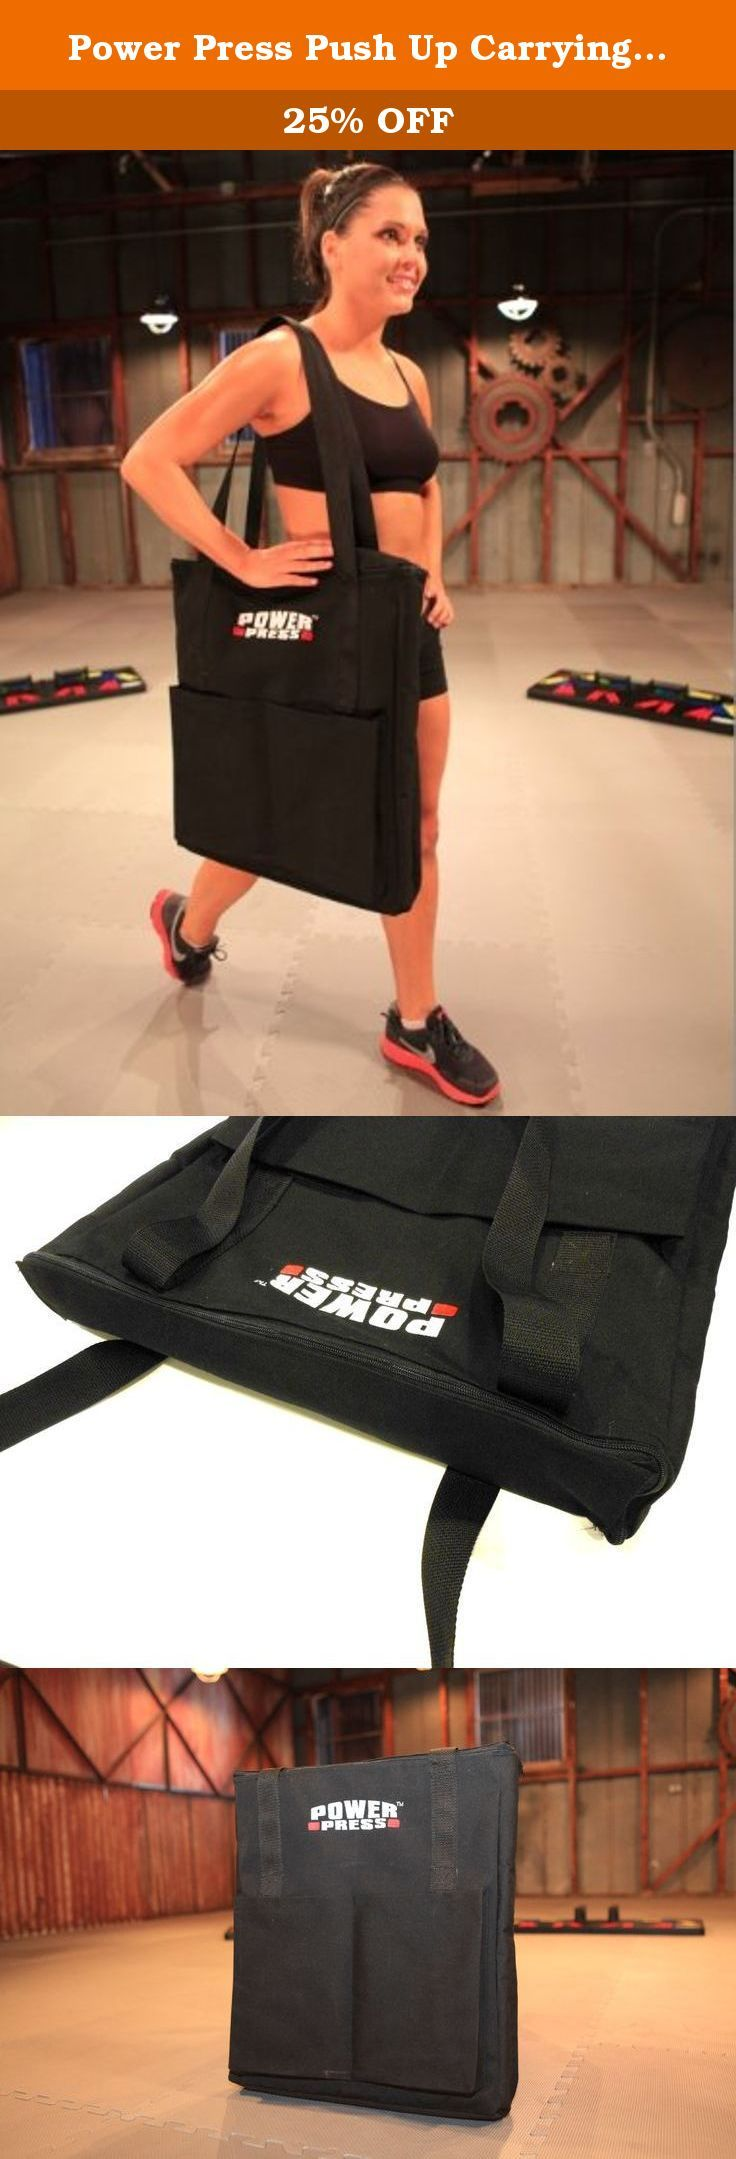 Power Press Push Up Carrying Bag (SALE). A Must Have for POWER PRESS PUSH UP Users! Store your Power Press Push Up in this convenient durable carrying/storage bag. This padded heavy duty nylon bag protects the boards and handles of your Power Press Push Up. The left and right boards slide conveniently in the bag, separated by a padded divider. The two hand grips have their own separate pockets, which are also padded so that they do not scratch the boards. Work out conveniently anywhere…